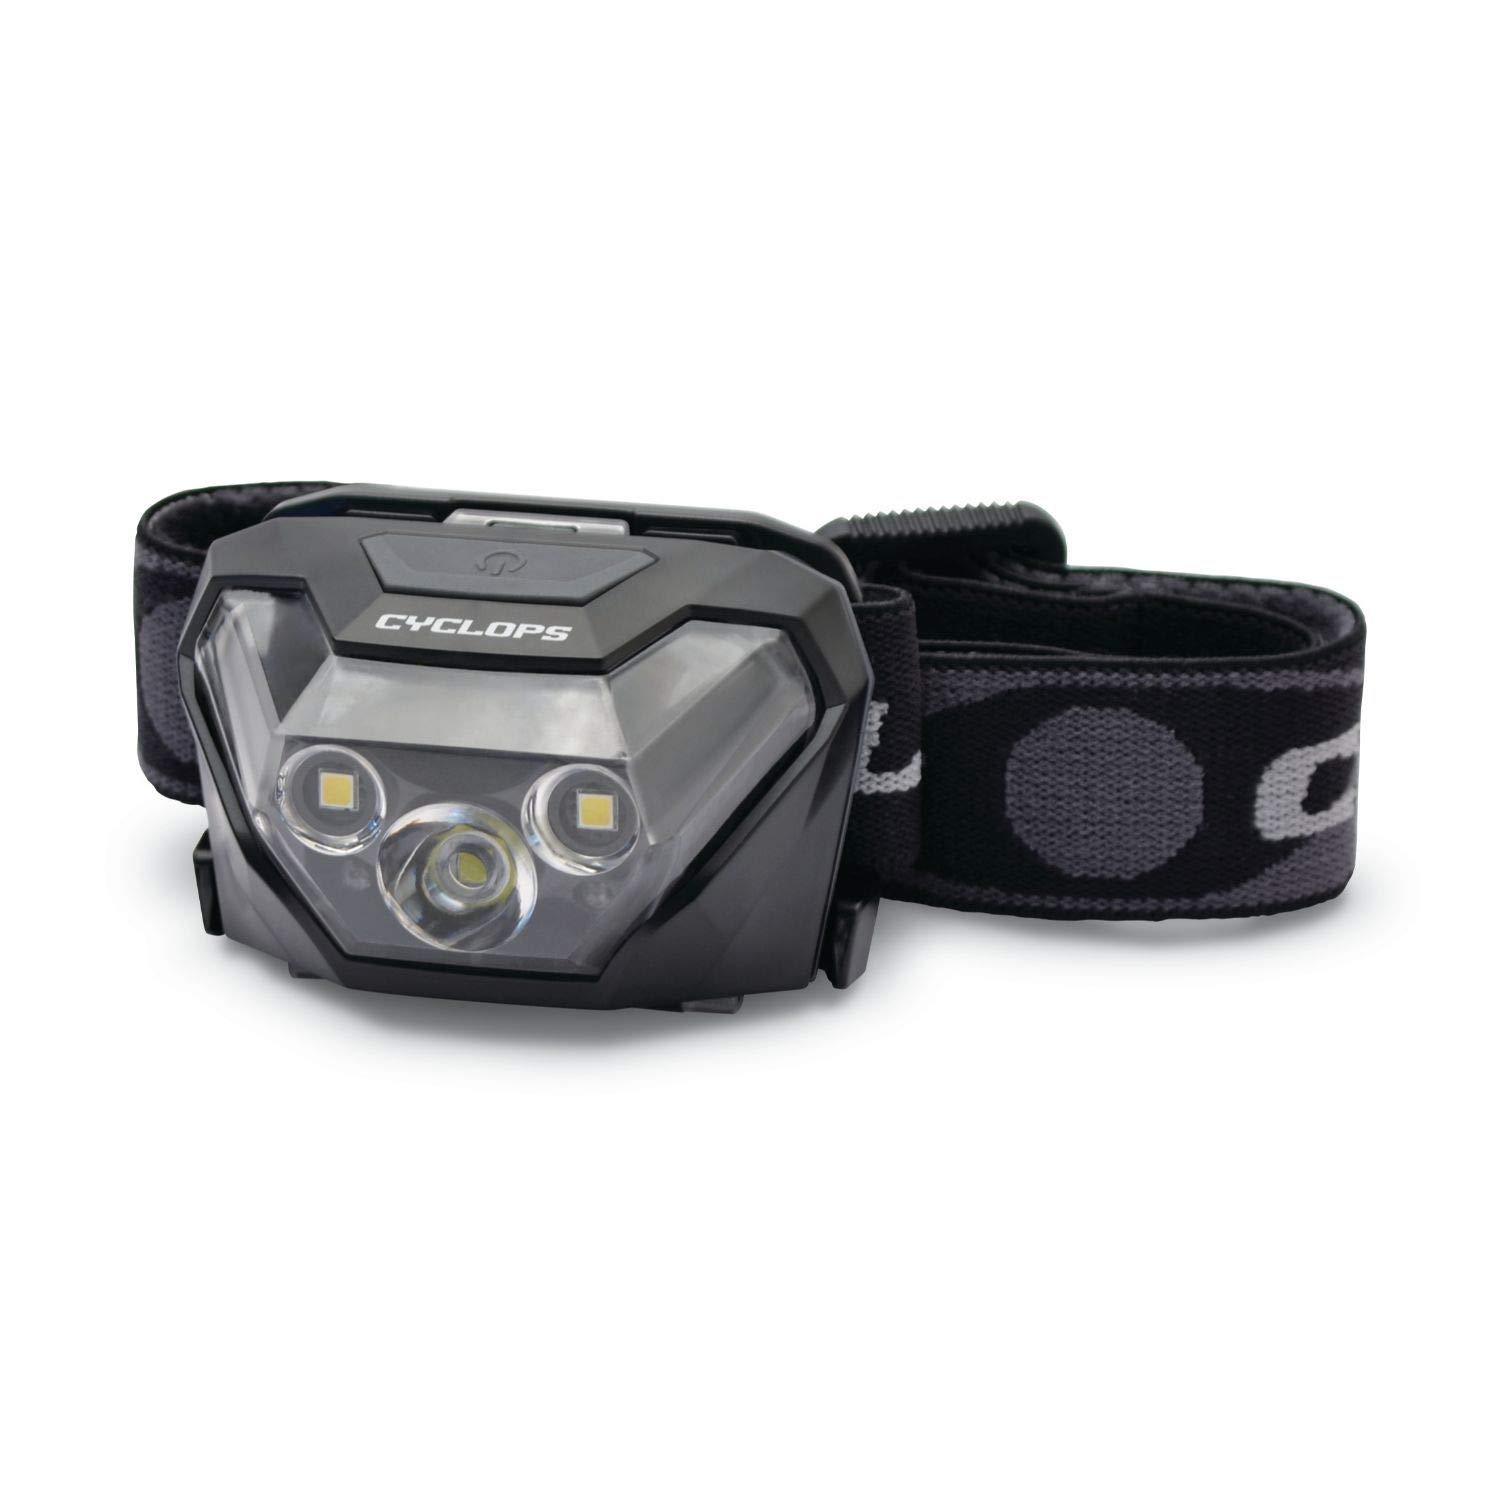 Cyclops 5W CREE LED 500 Lumen Headlamp with Red LED